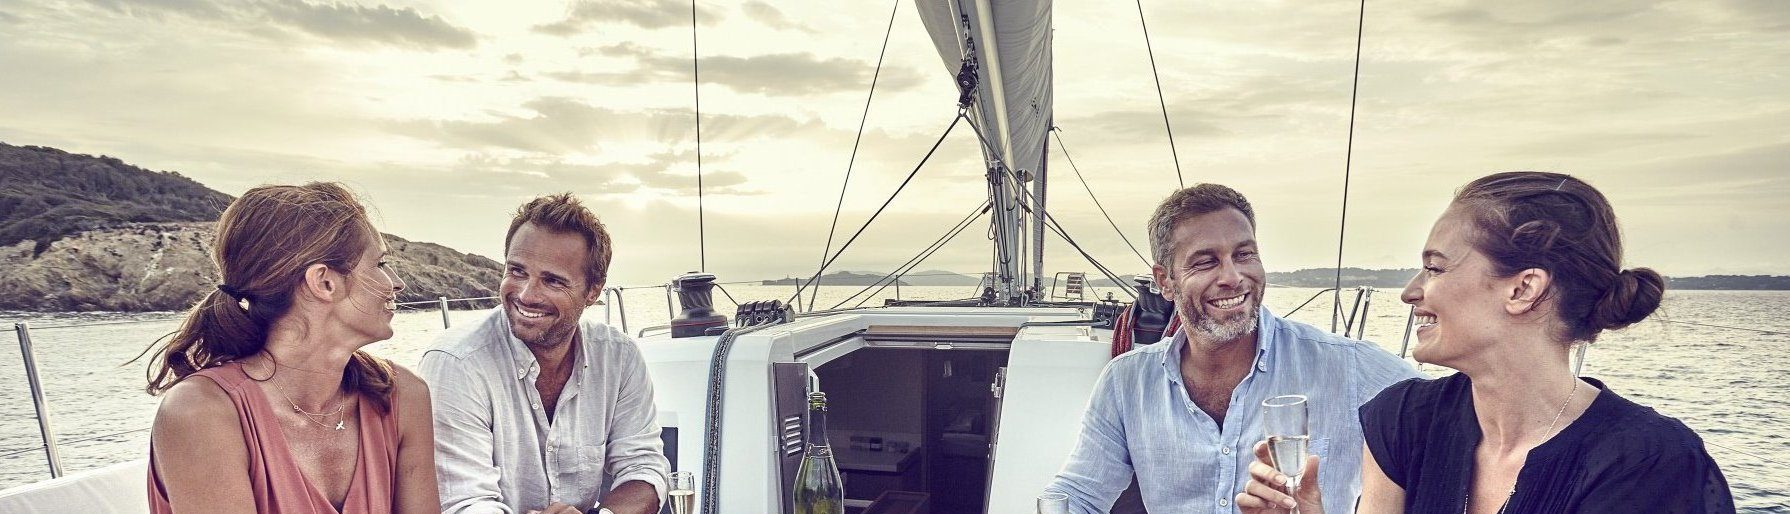 Business yacht ownership